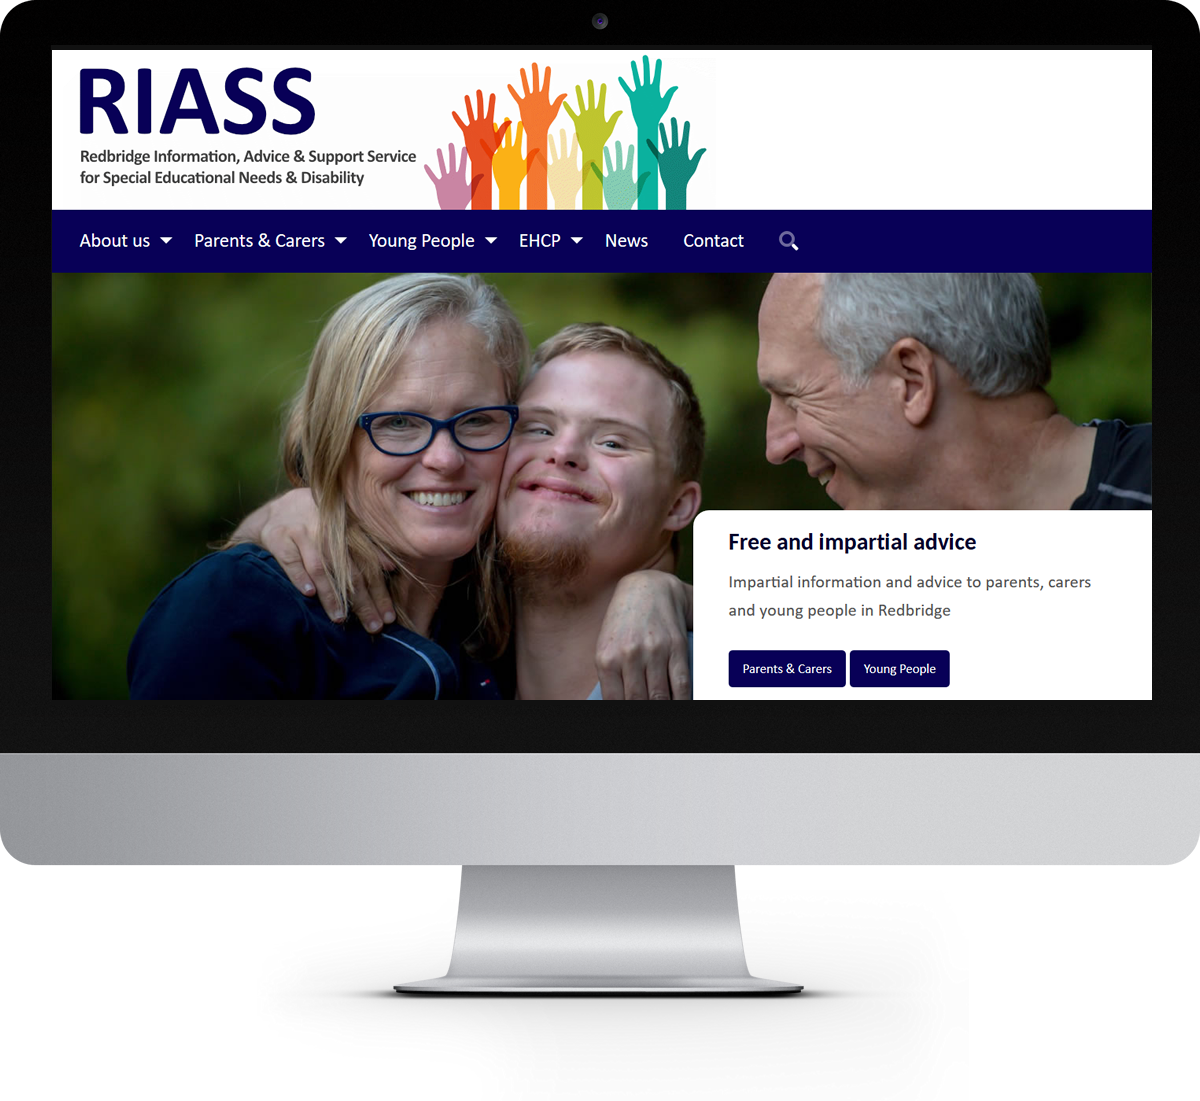 The RIASS website home page